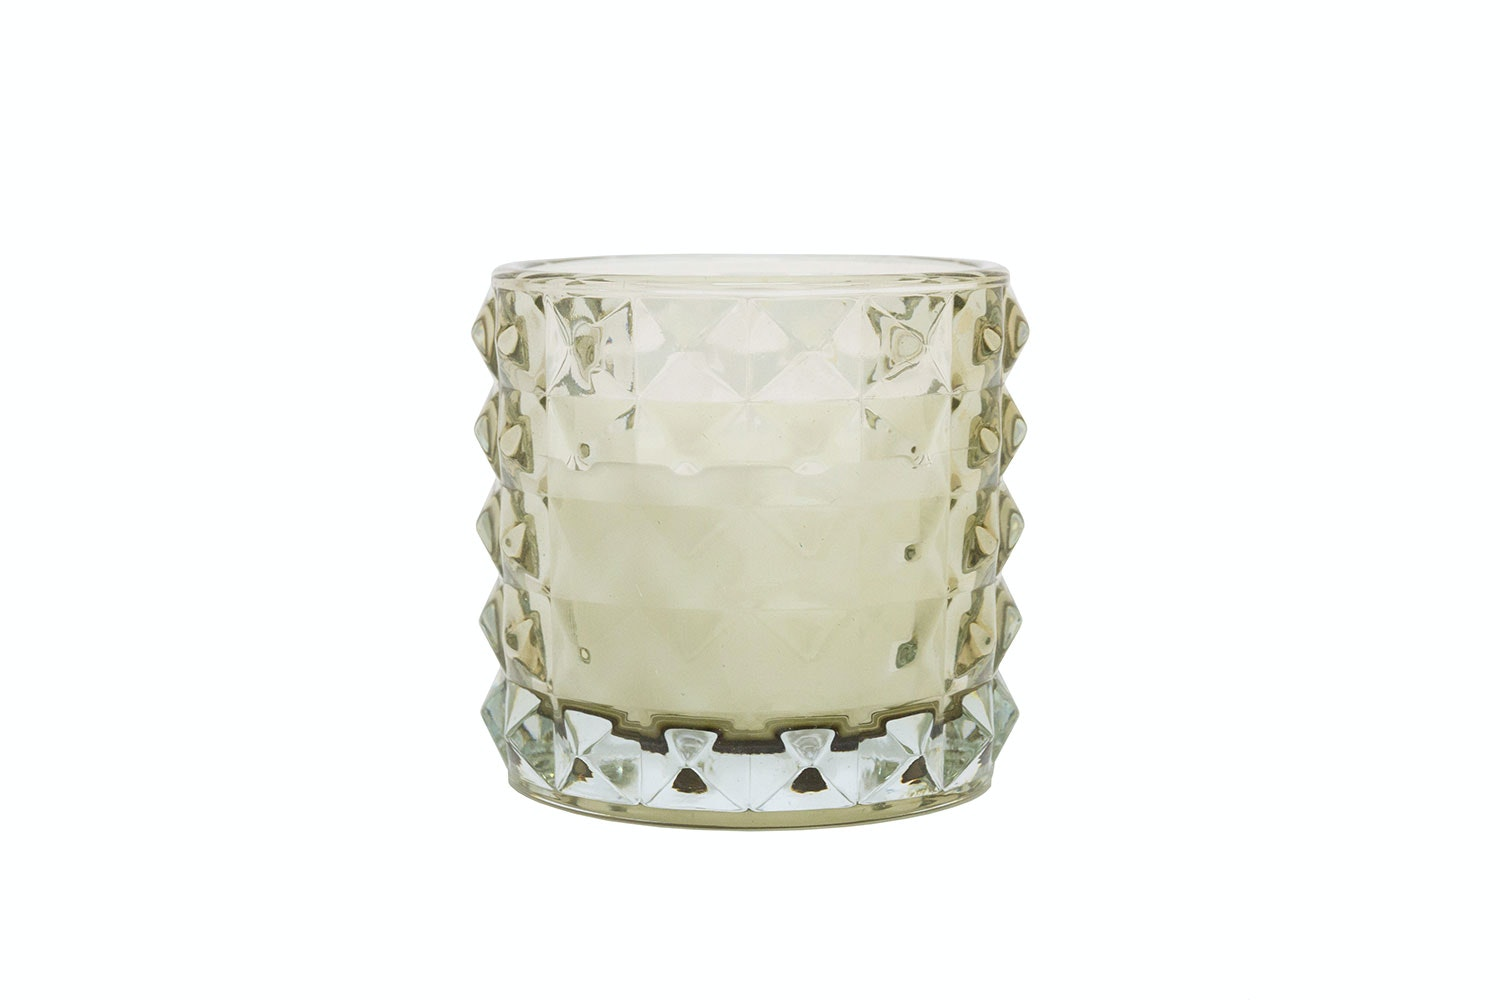 Glass Candle Holder with Candle by Kerridge